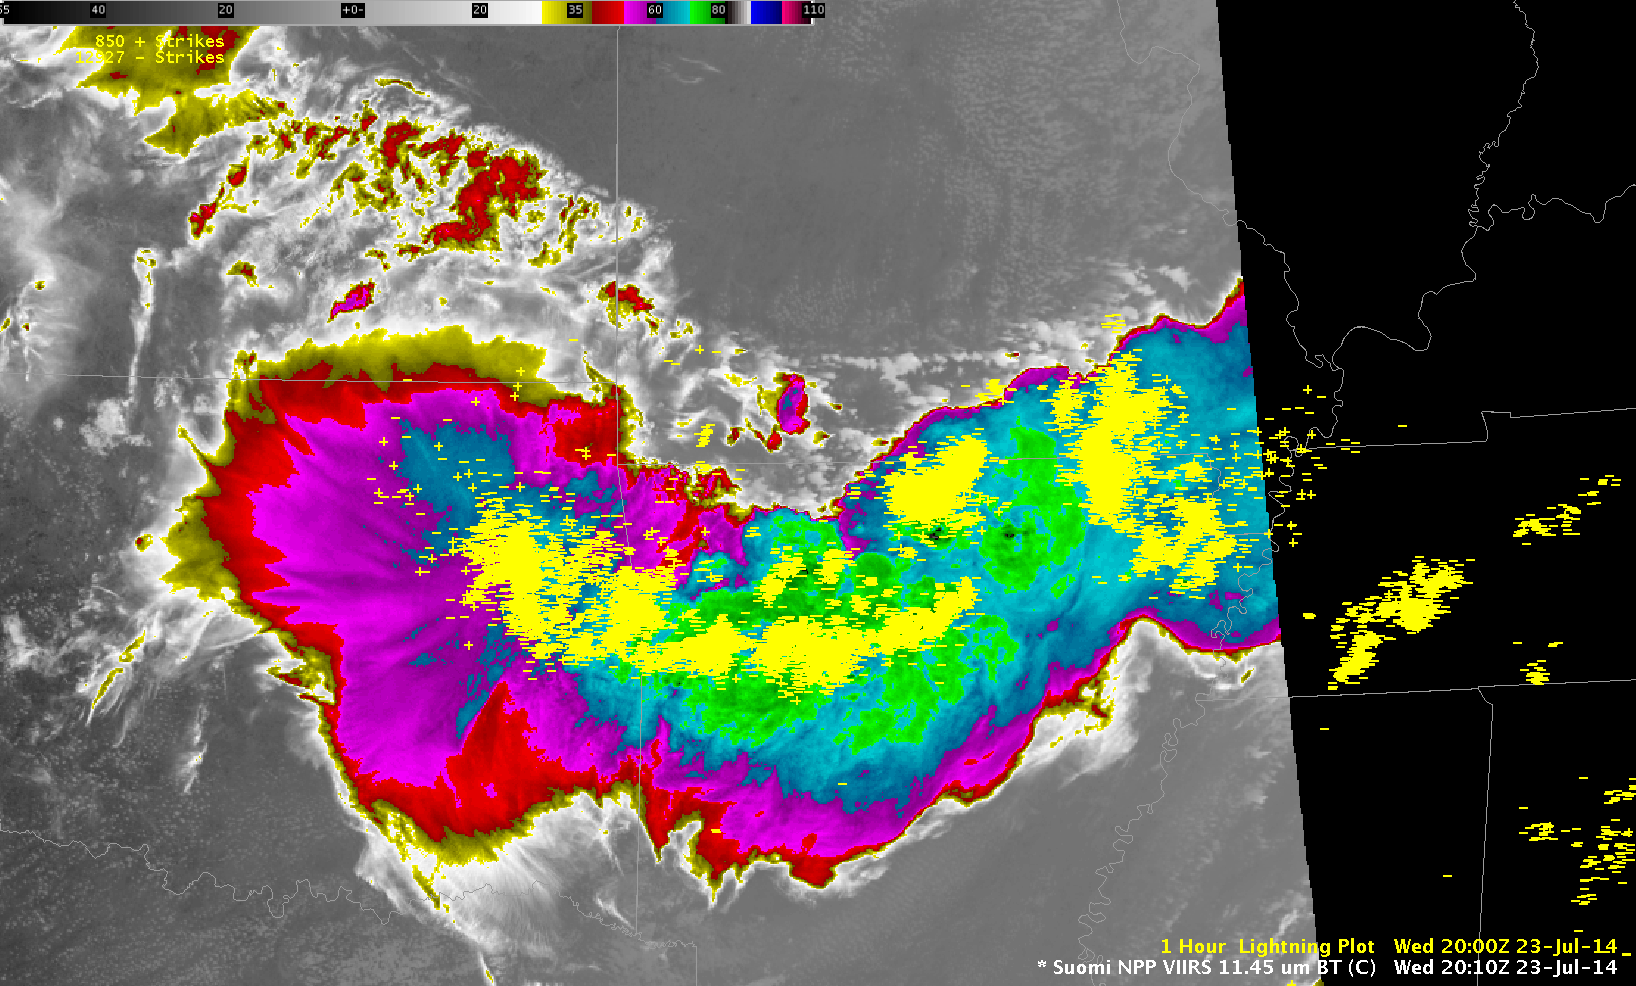 Suomi NPP 11.35 µm infrared channel imagery and Detected Lightning (click to play animation)